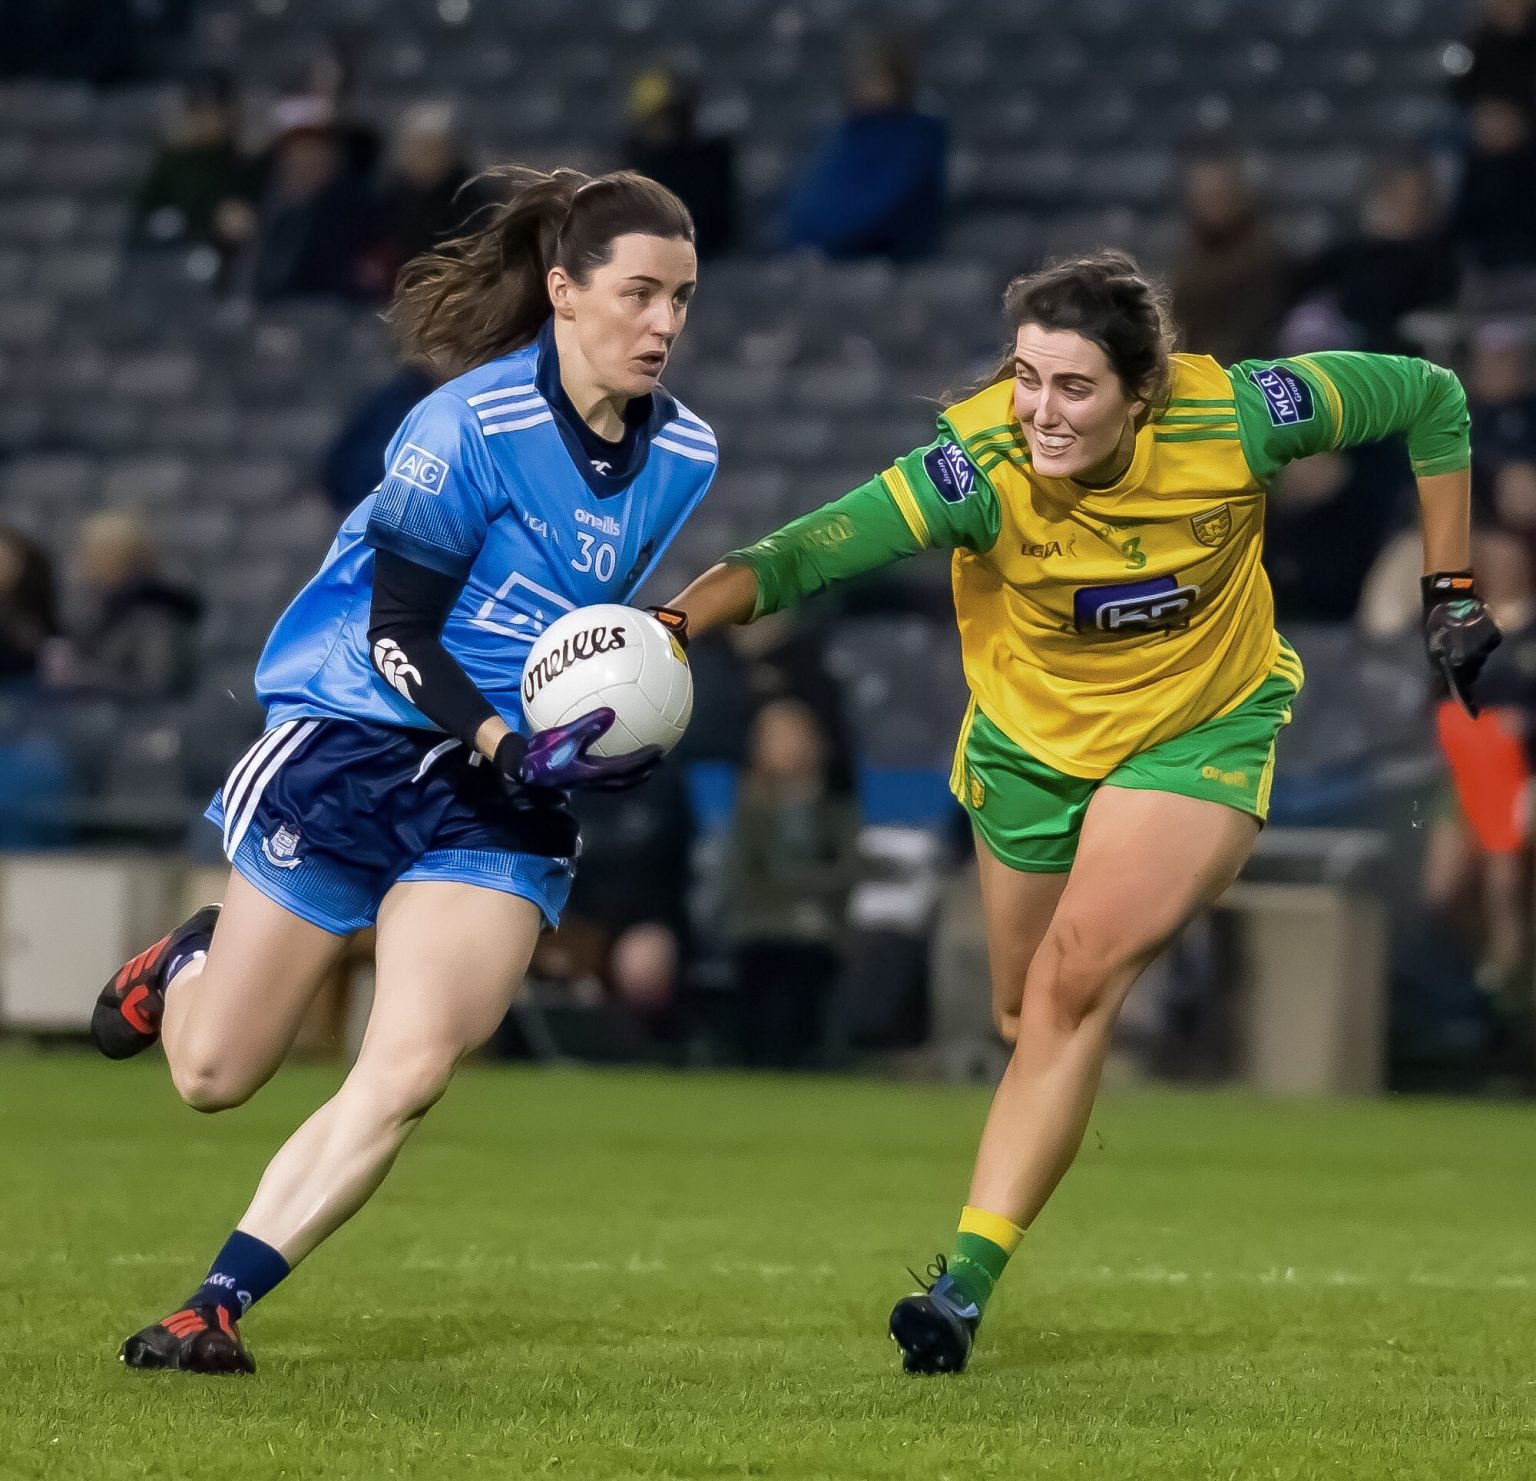 Dublin's Lyndsey Davey is a sky blue jersey and navy shorts evades the tackle of a Donegal player in a yellow jersey and green shorts in the Lidl Ladies National Football League